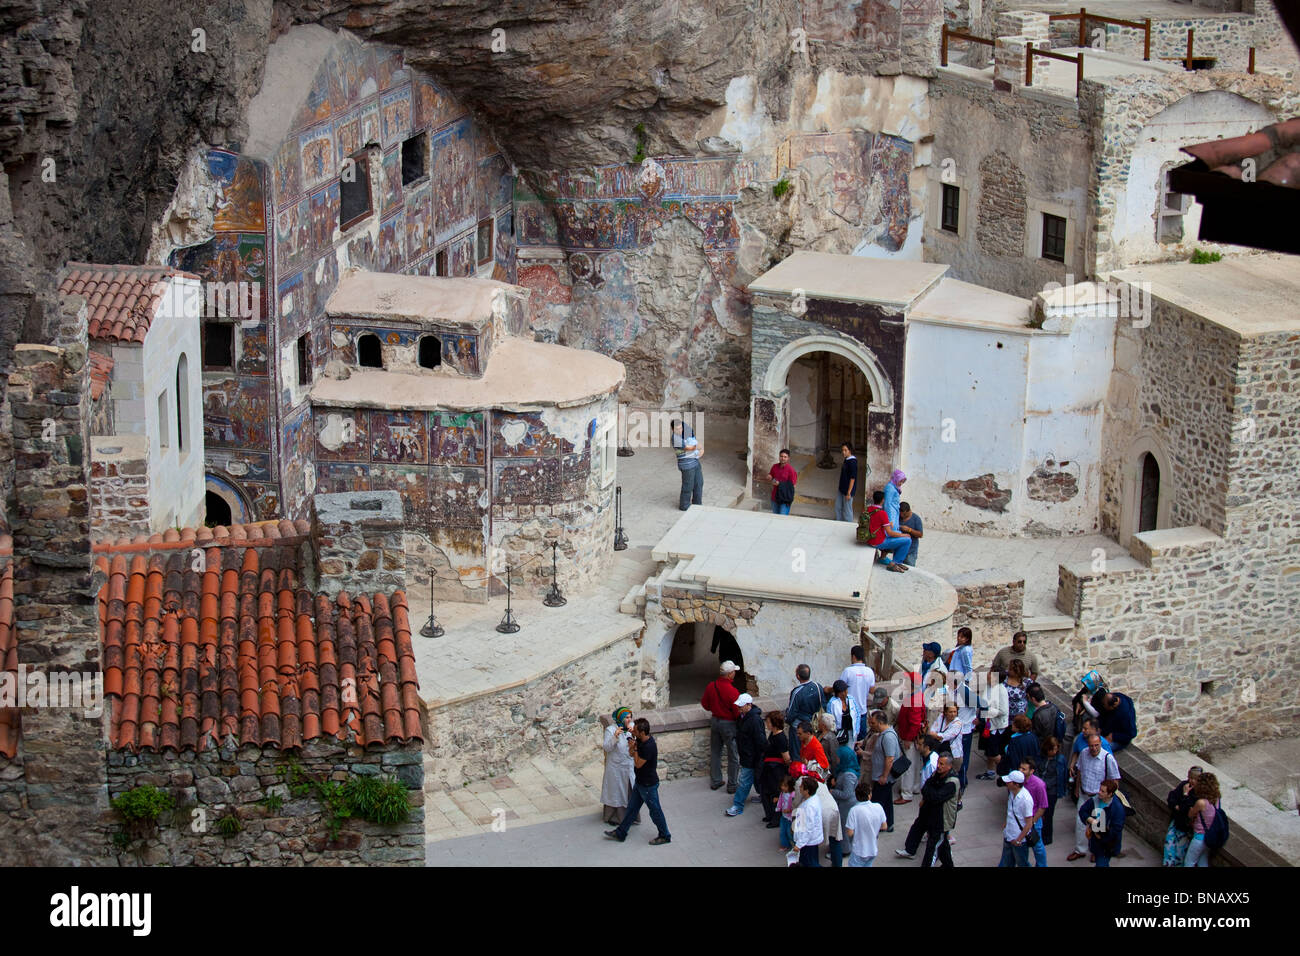 Greek Orthodox Sumela Monastery near Trabzon Turkey - Stock Image